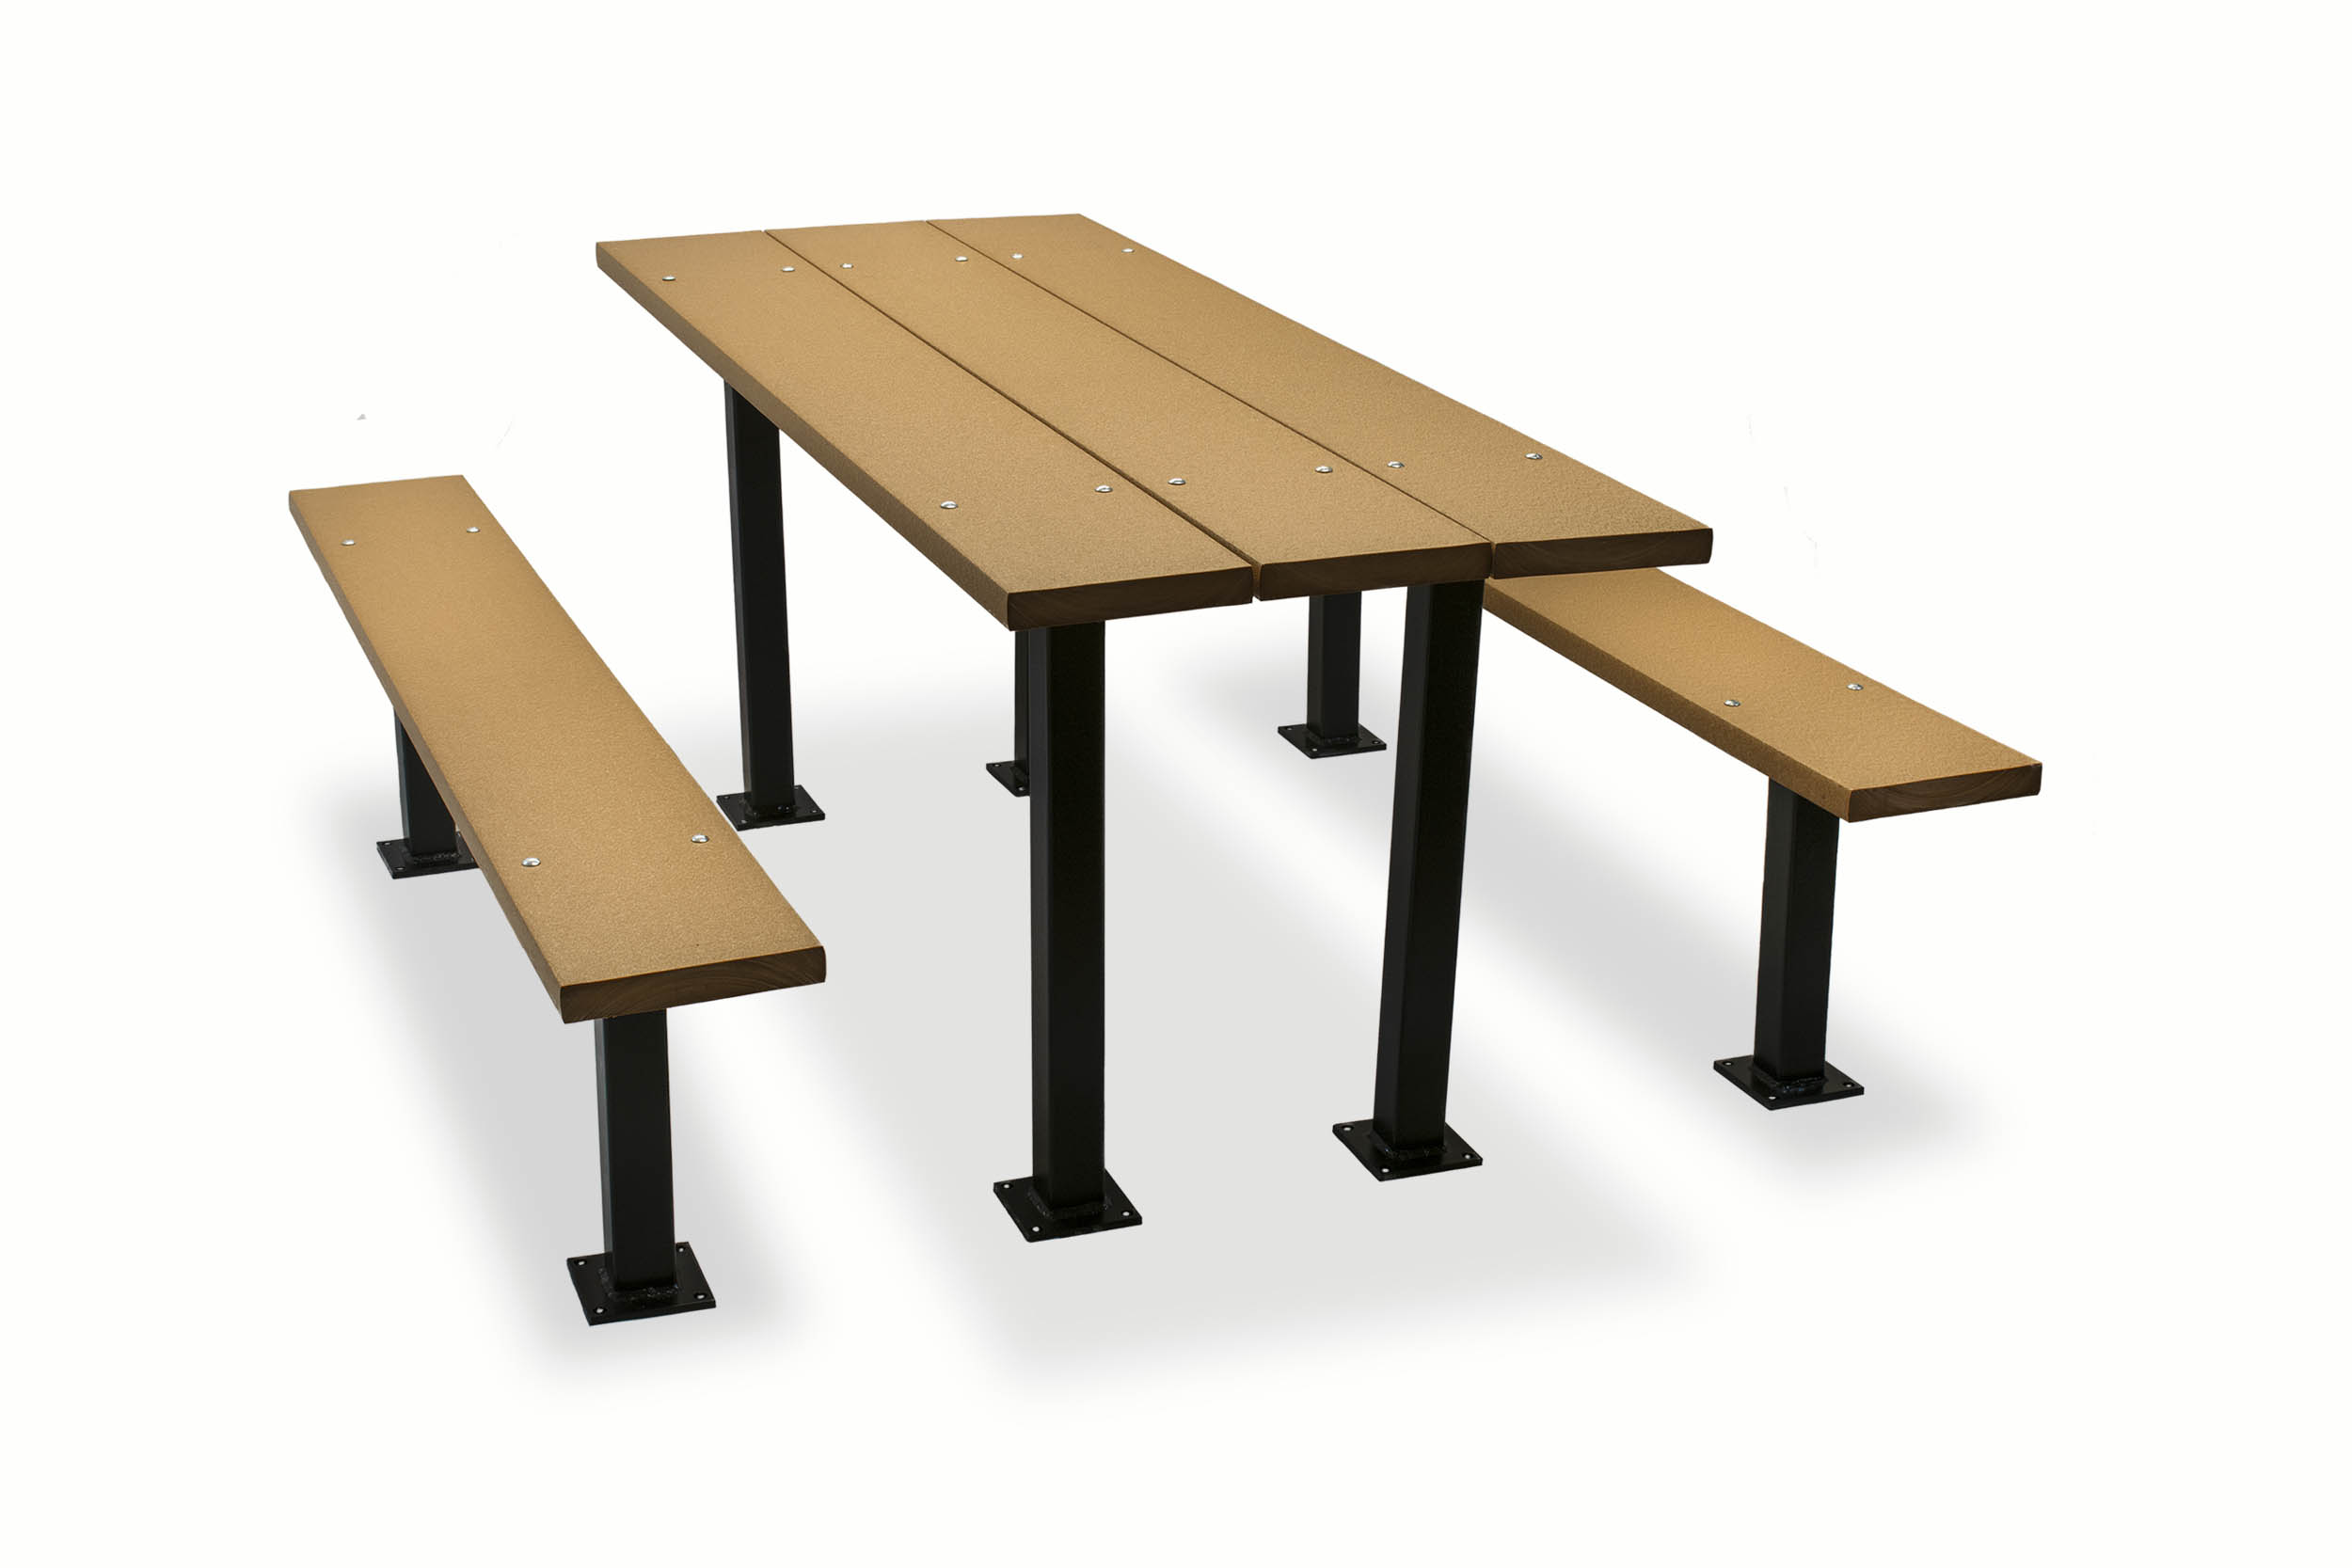 Fabulous Advantage Outdoor Products Commercial Site Furnishings 6 Cambridge Recycled Plastic Picnic Table Download Free Architecture Designs Scobabritishbridgeorg